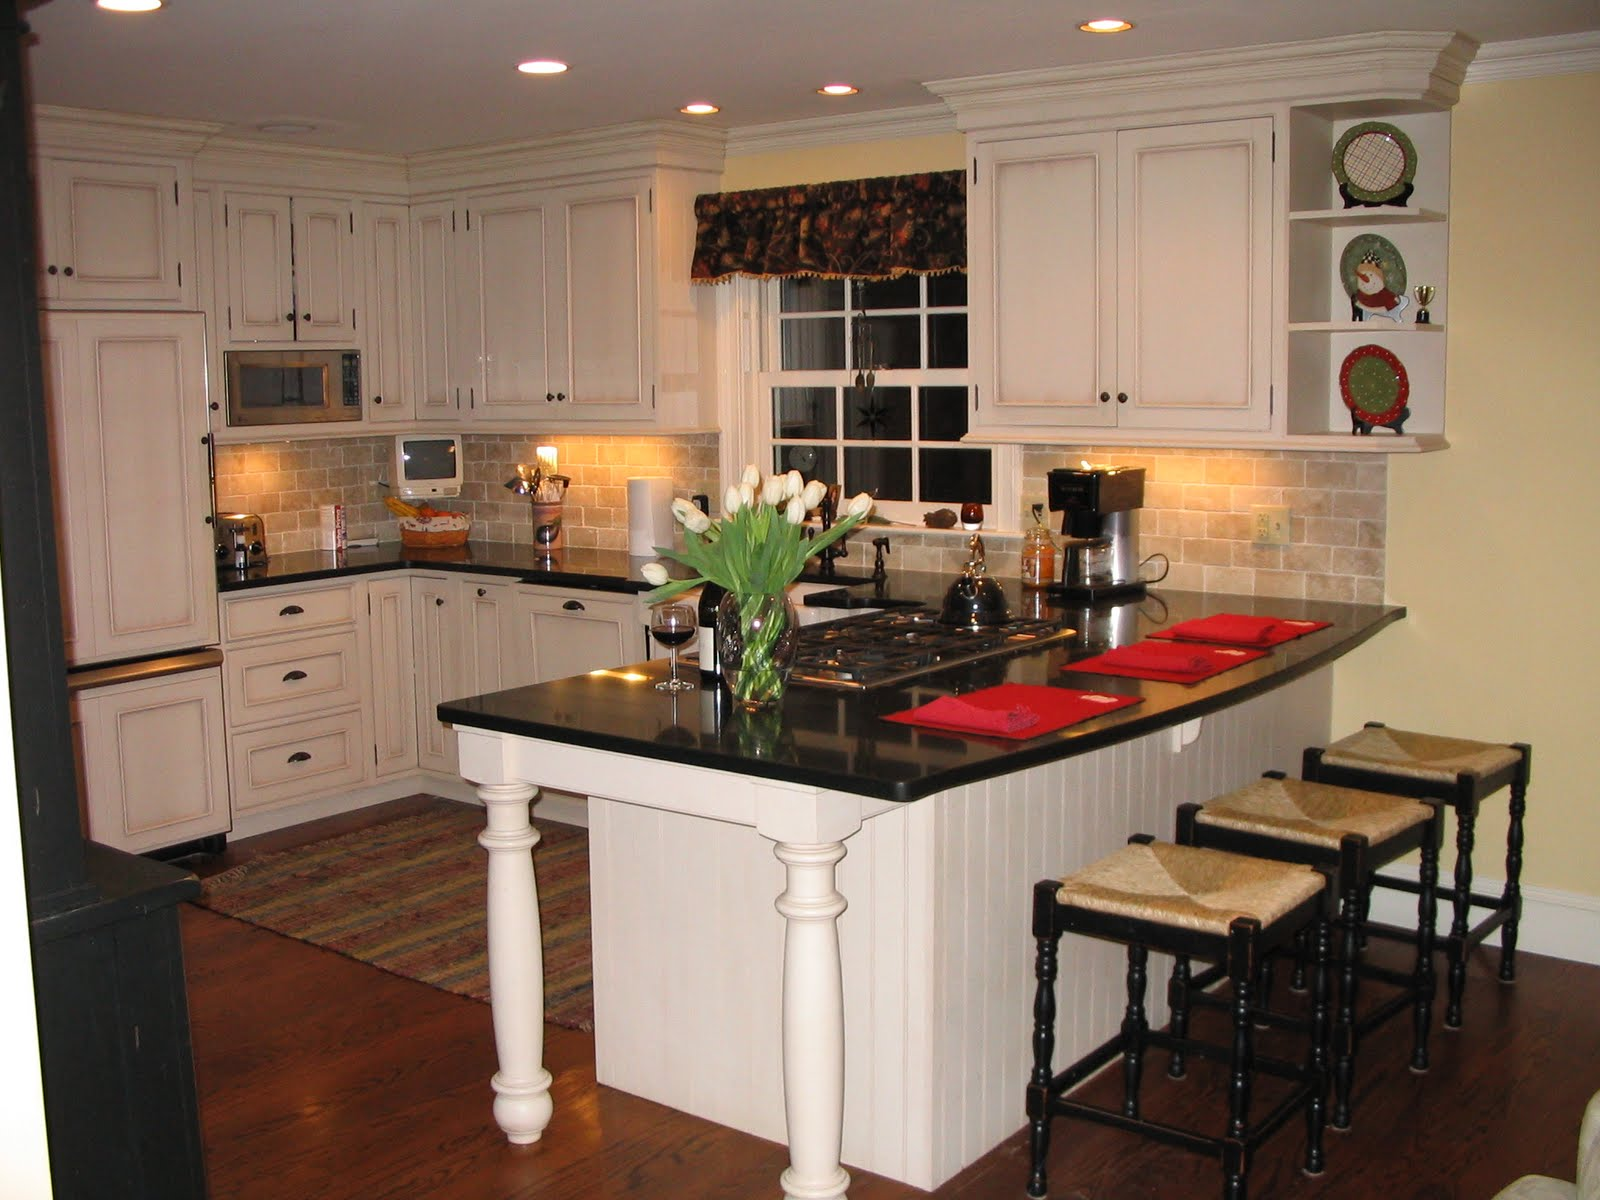 10 Kitchen Cabinet Tips: 5 Tips For Refinishing Kitchen Cabinets